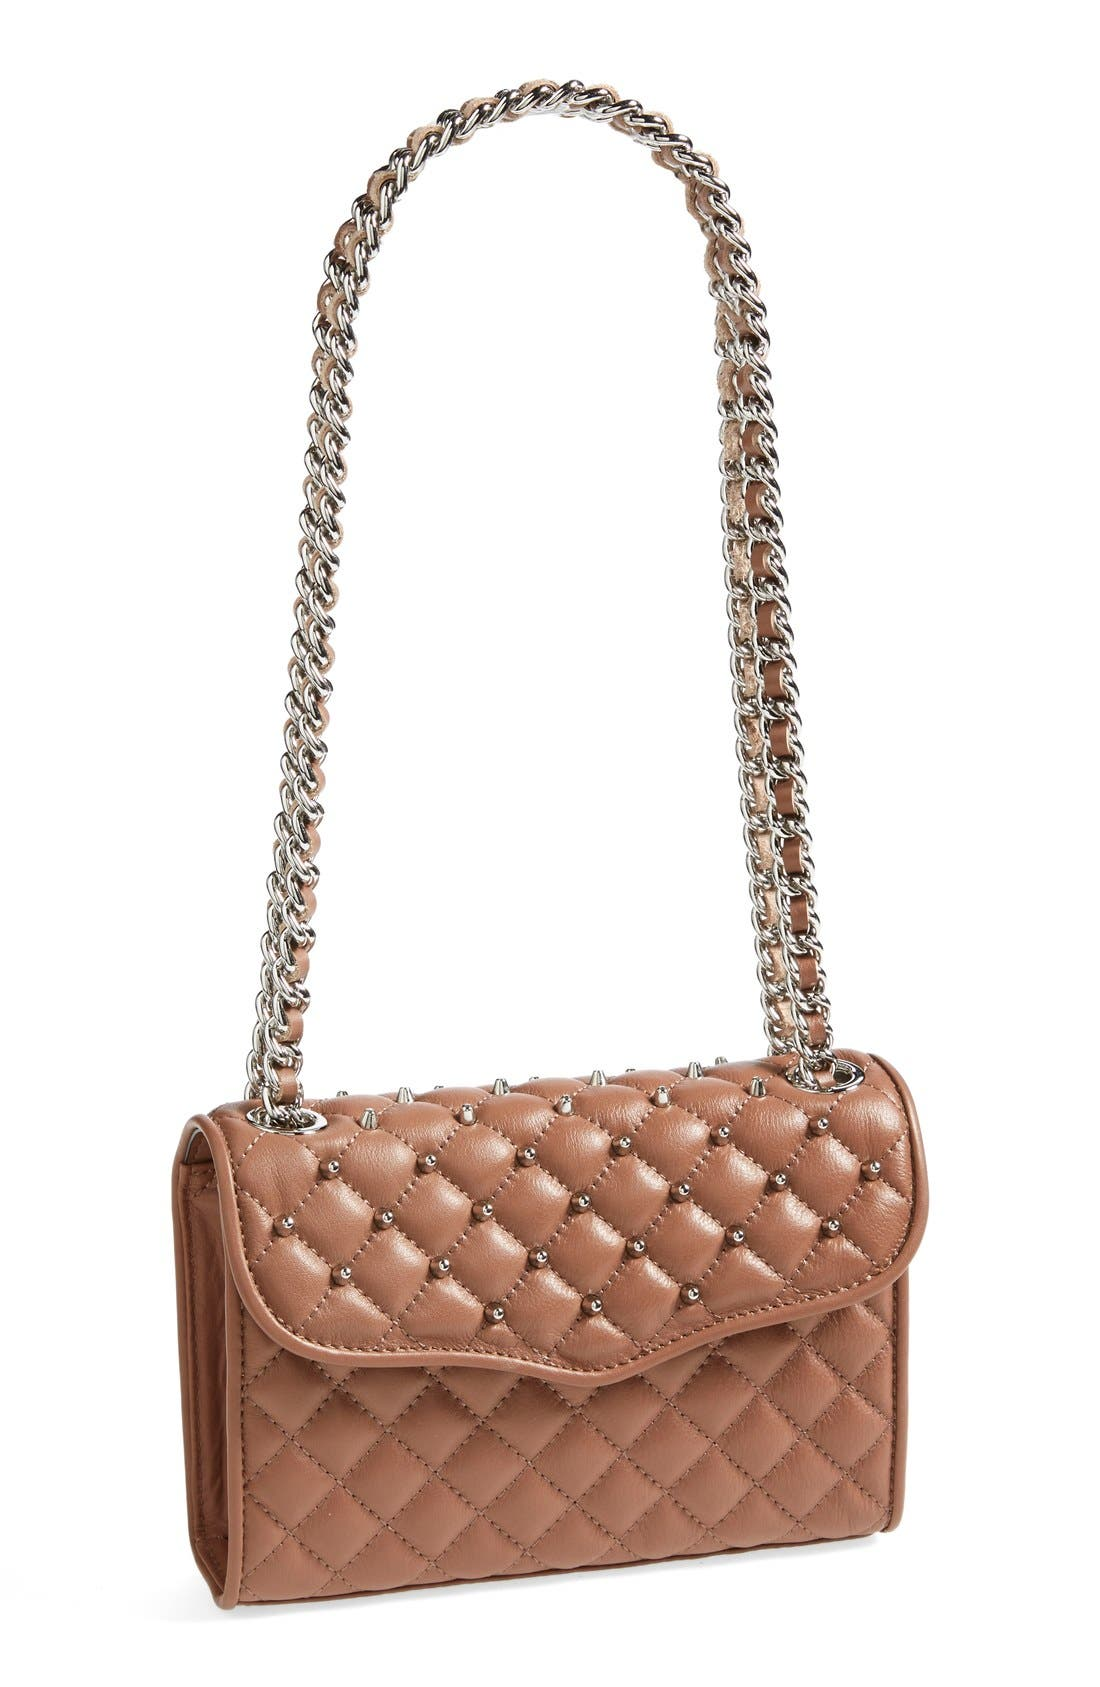 Alternate Image 1 Selected - Rebecca Minkoff 'Mini Affair with Studs' Convertible Crossbody Bag